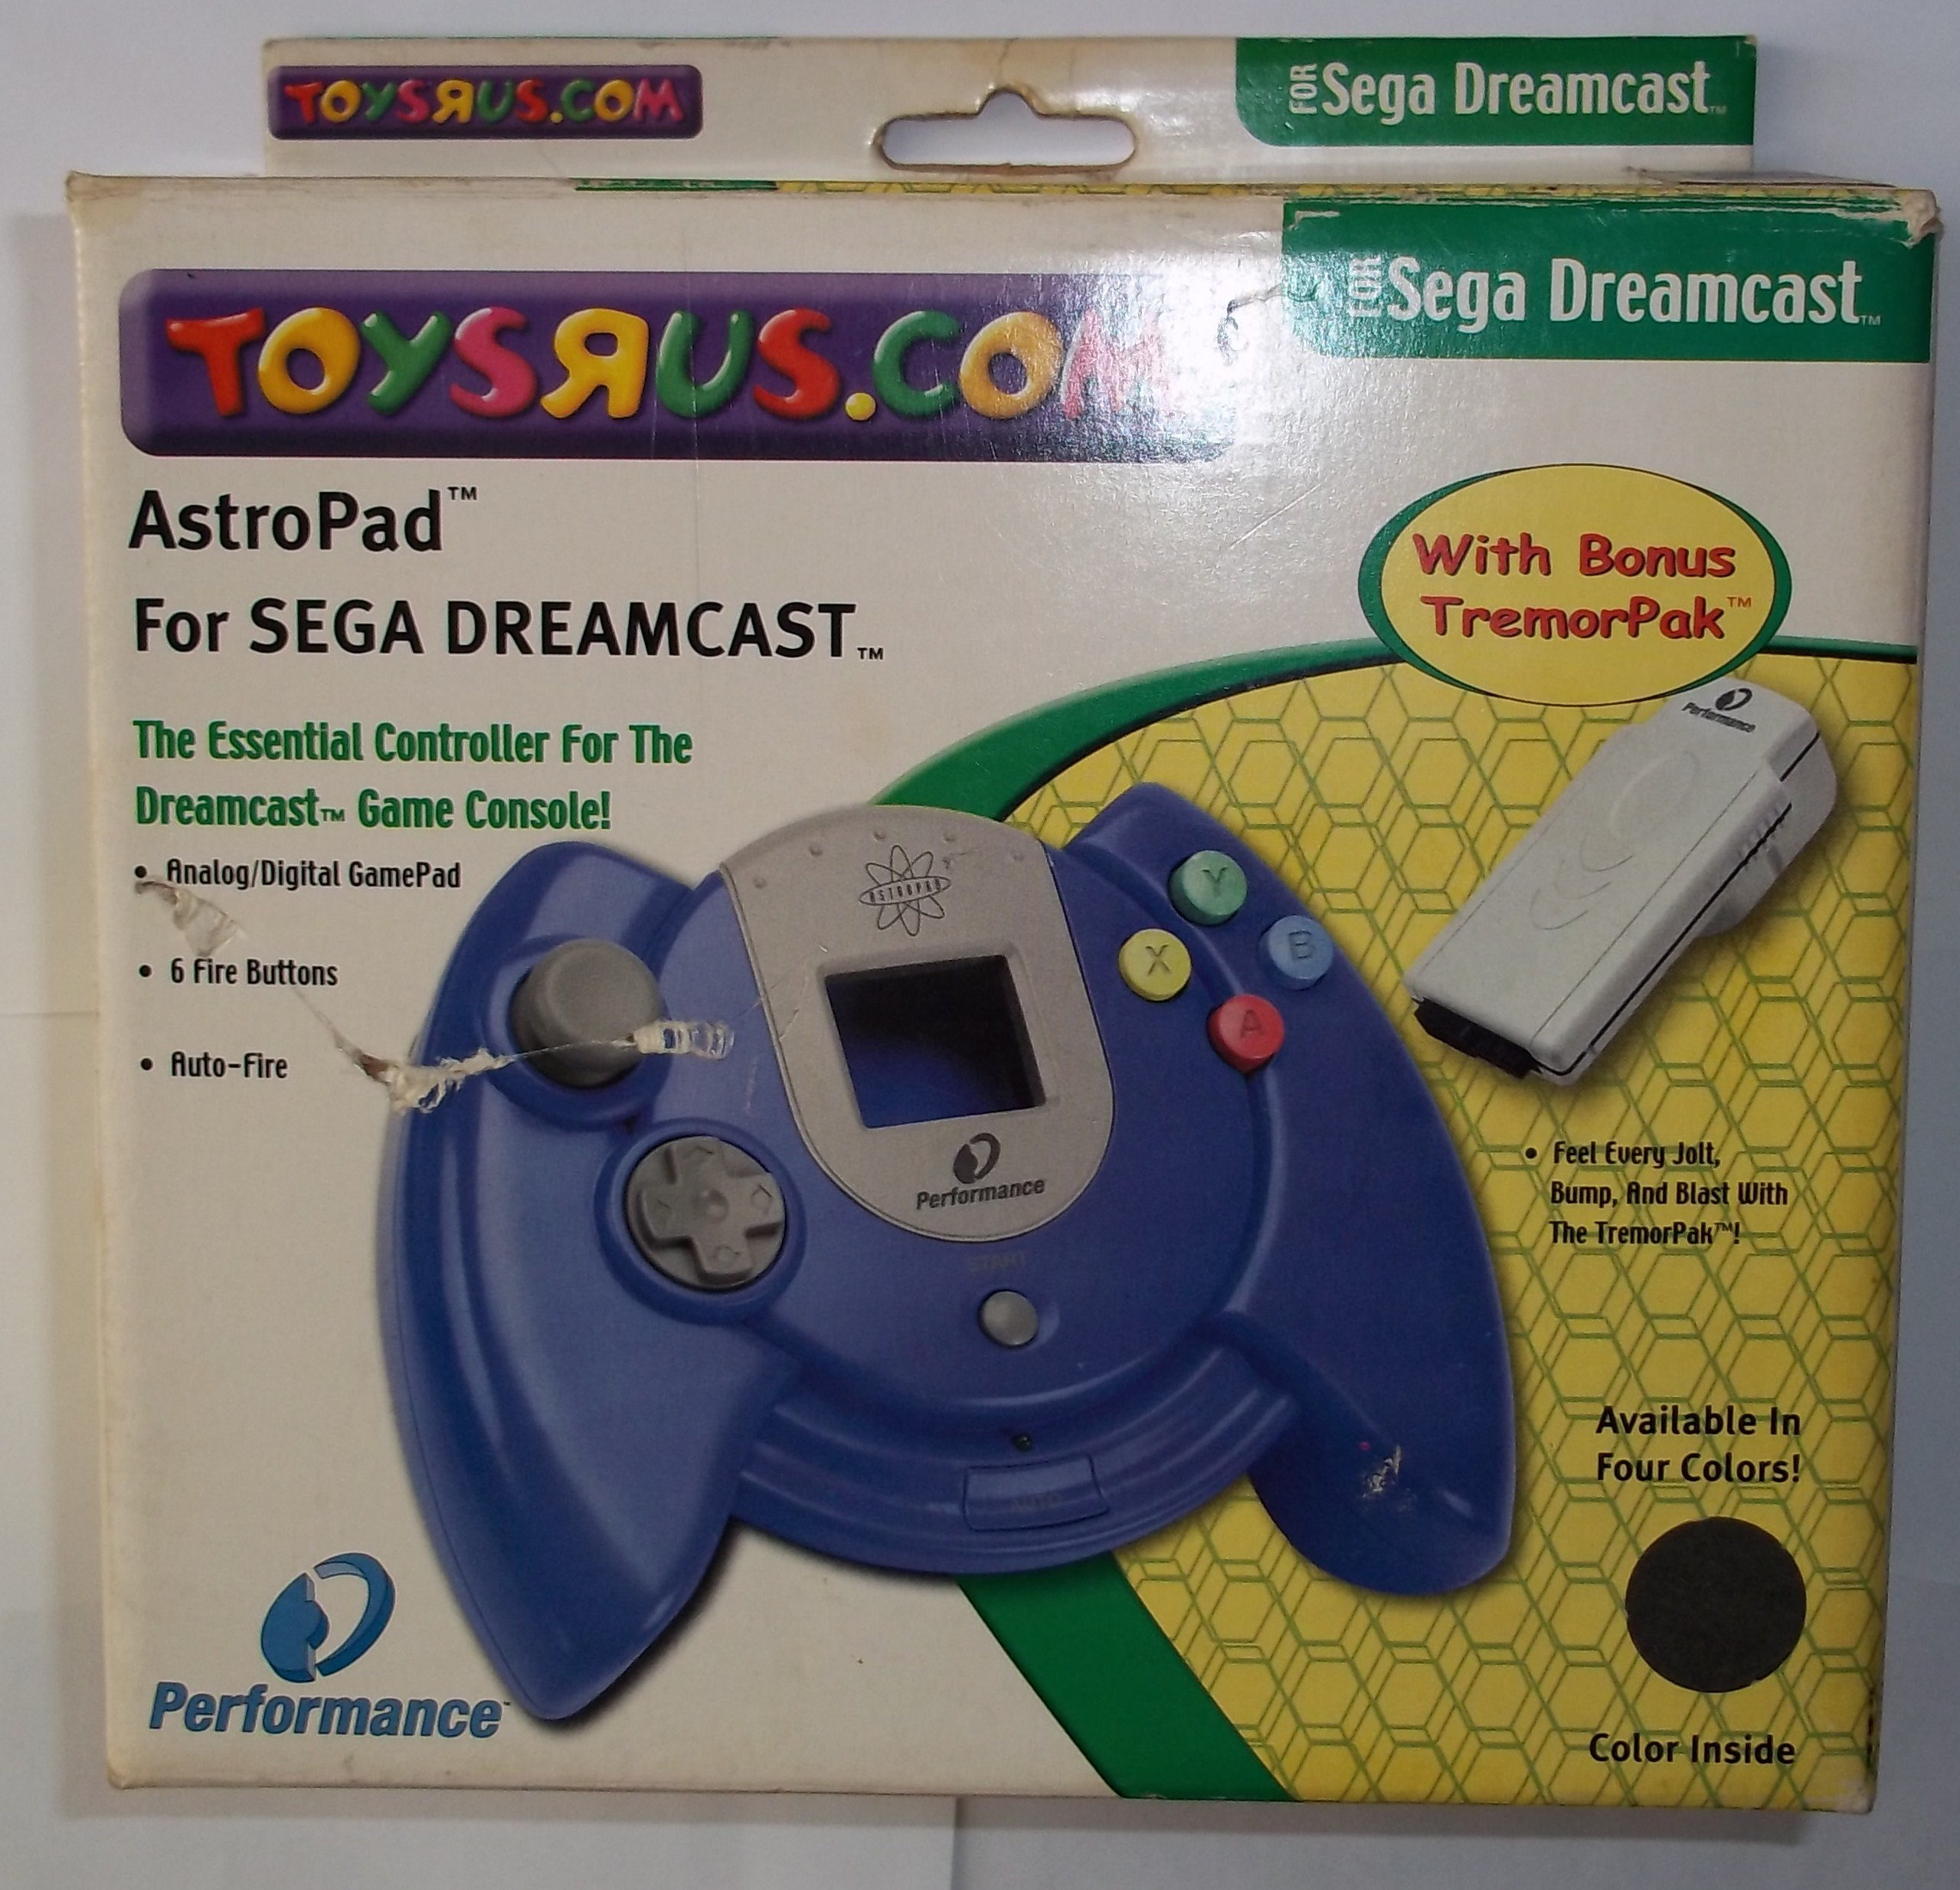 Astro Pad for Sega Dreamcast (Toys R Us edition) with TremorPak - Black